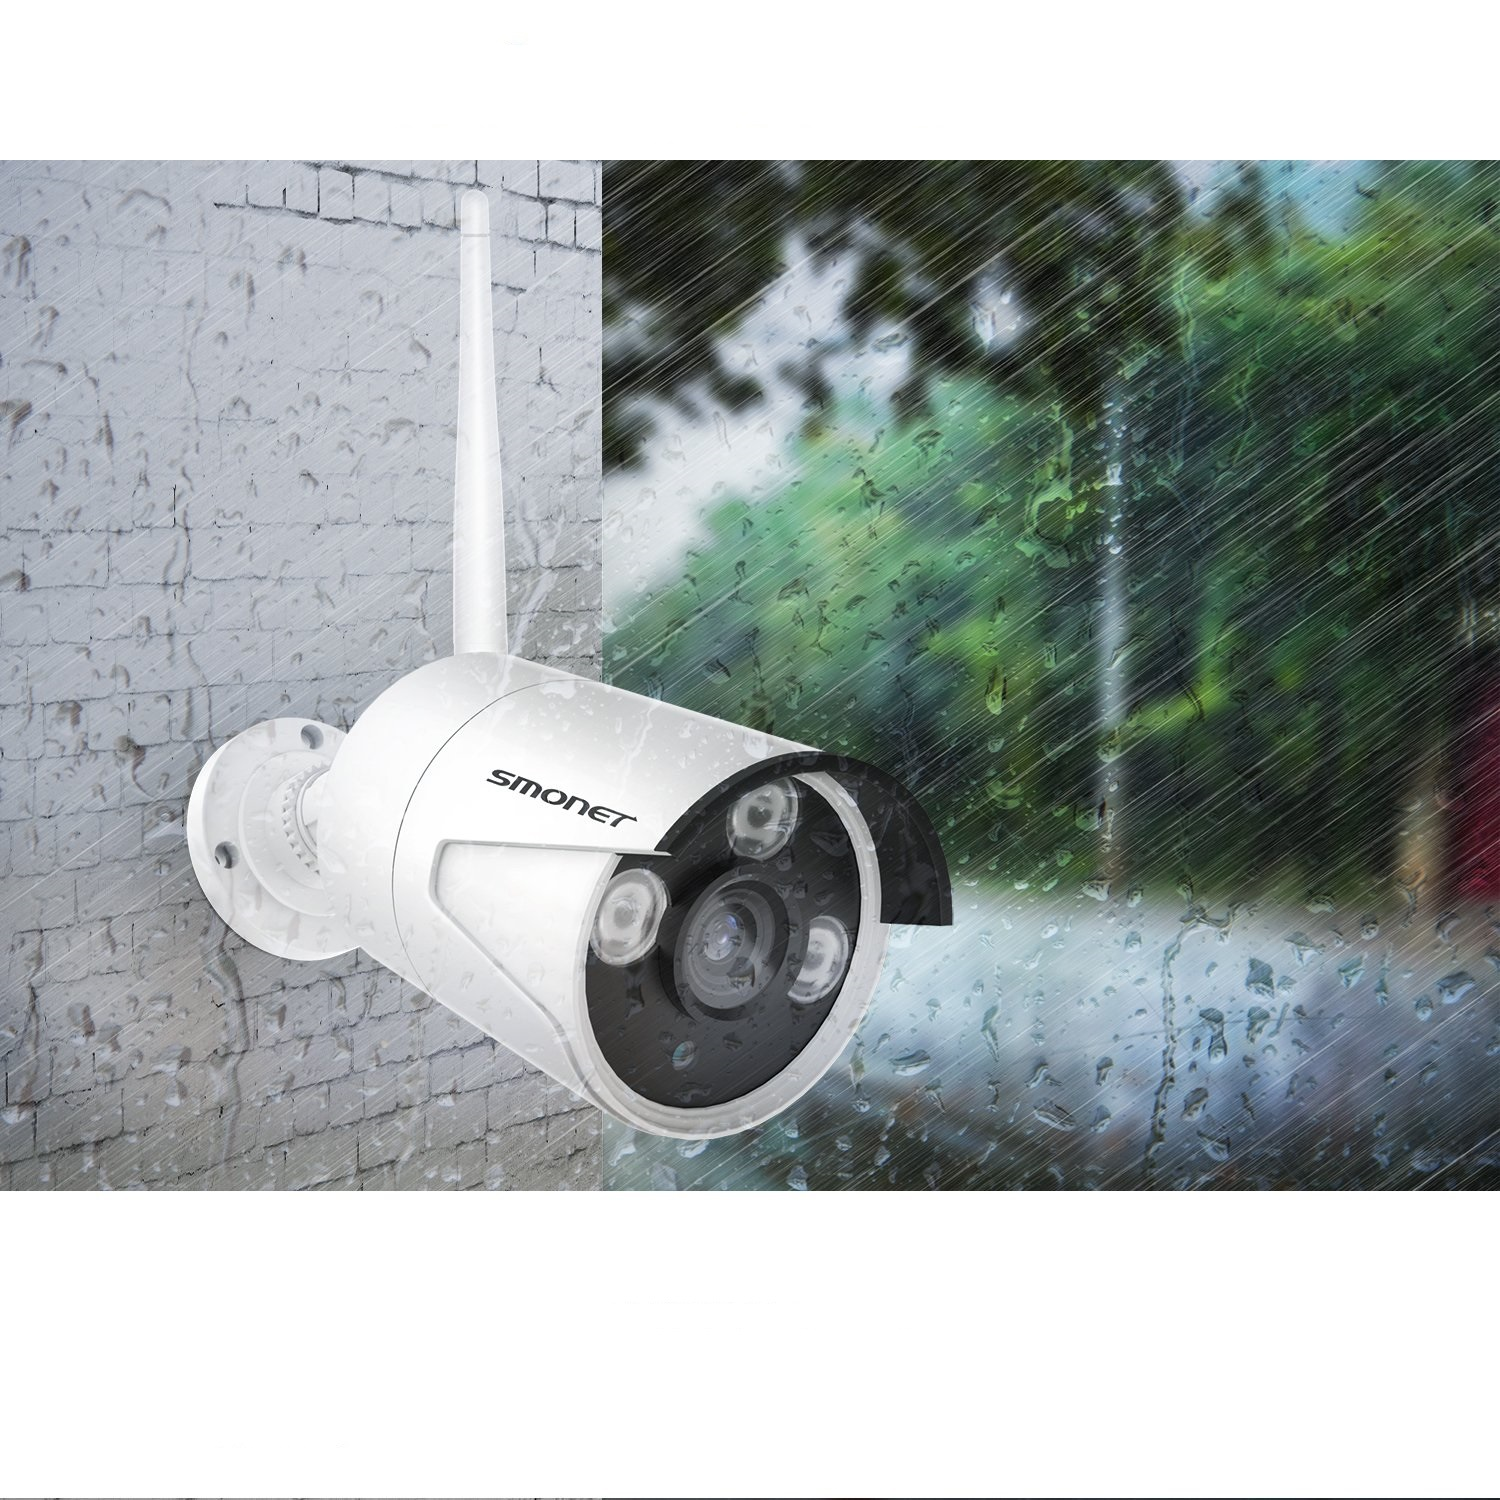 best Smonet 4 CH Outdoor Night Vision Security Camera